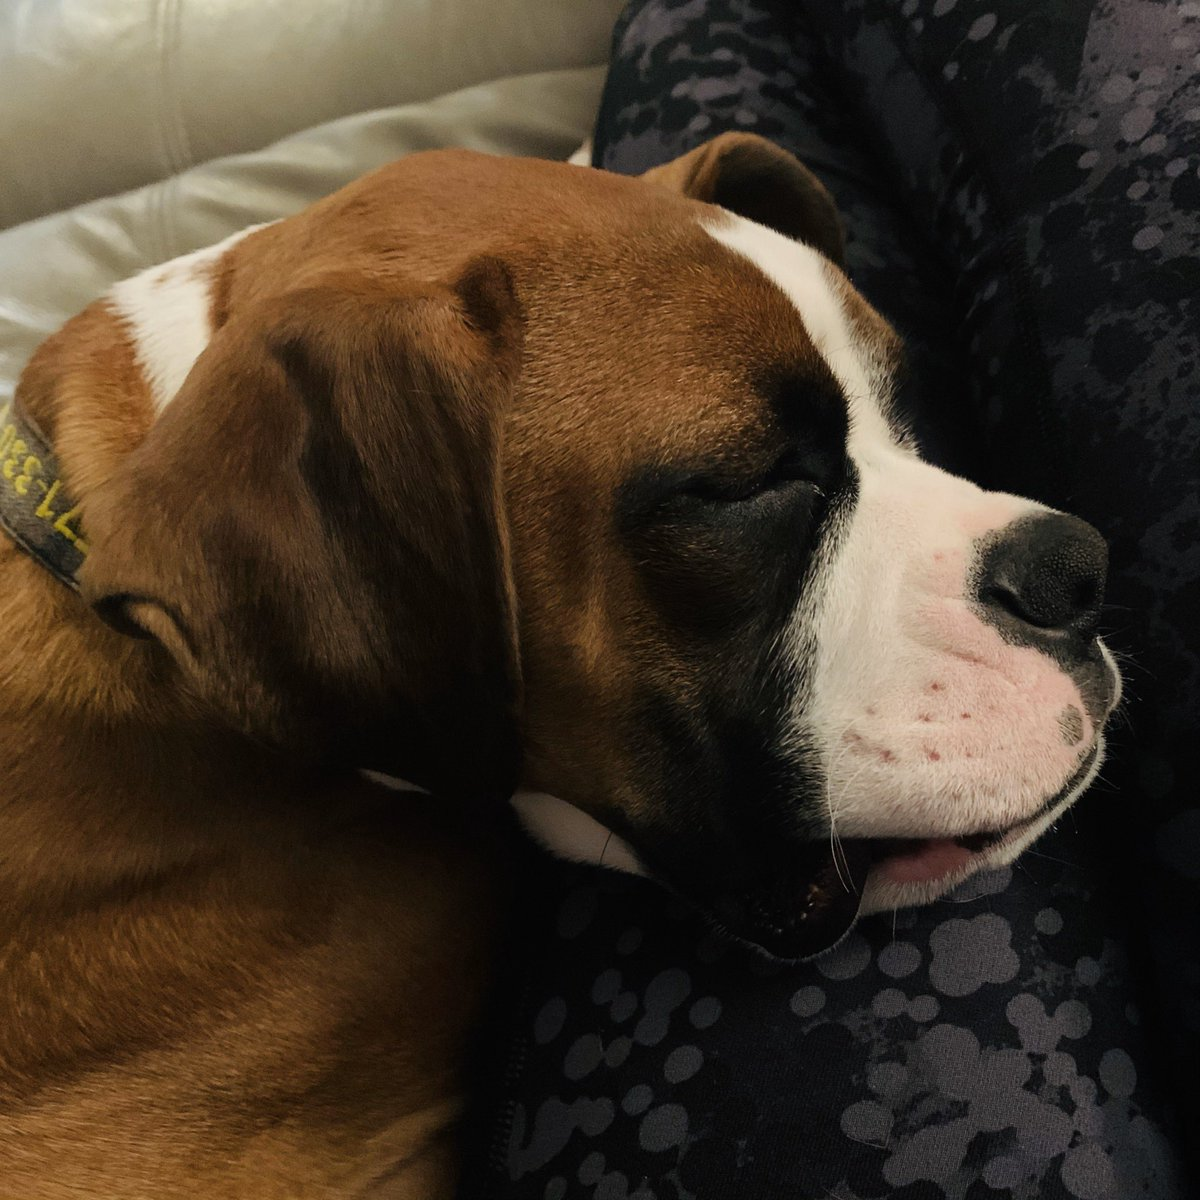 One of the perks of being home....  #boxer #DogLover @GillIadozpic.twitter.com/khoJukeJBI